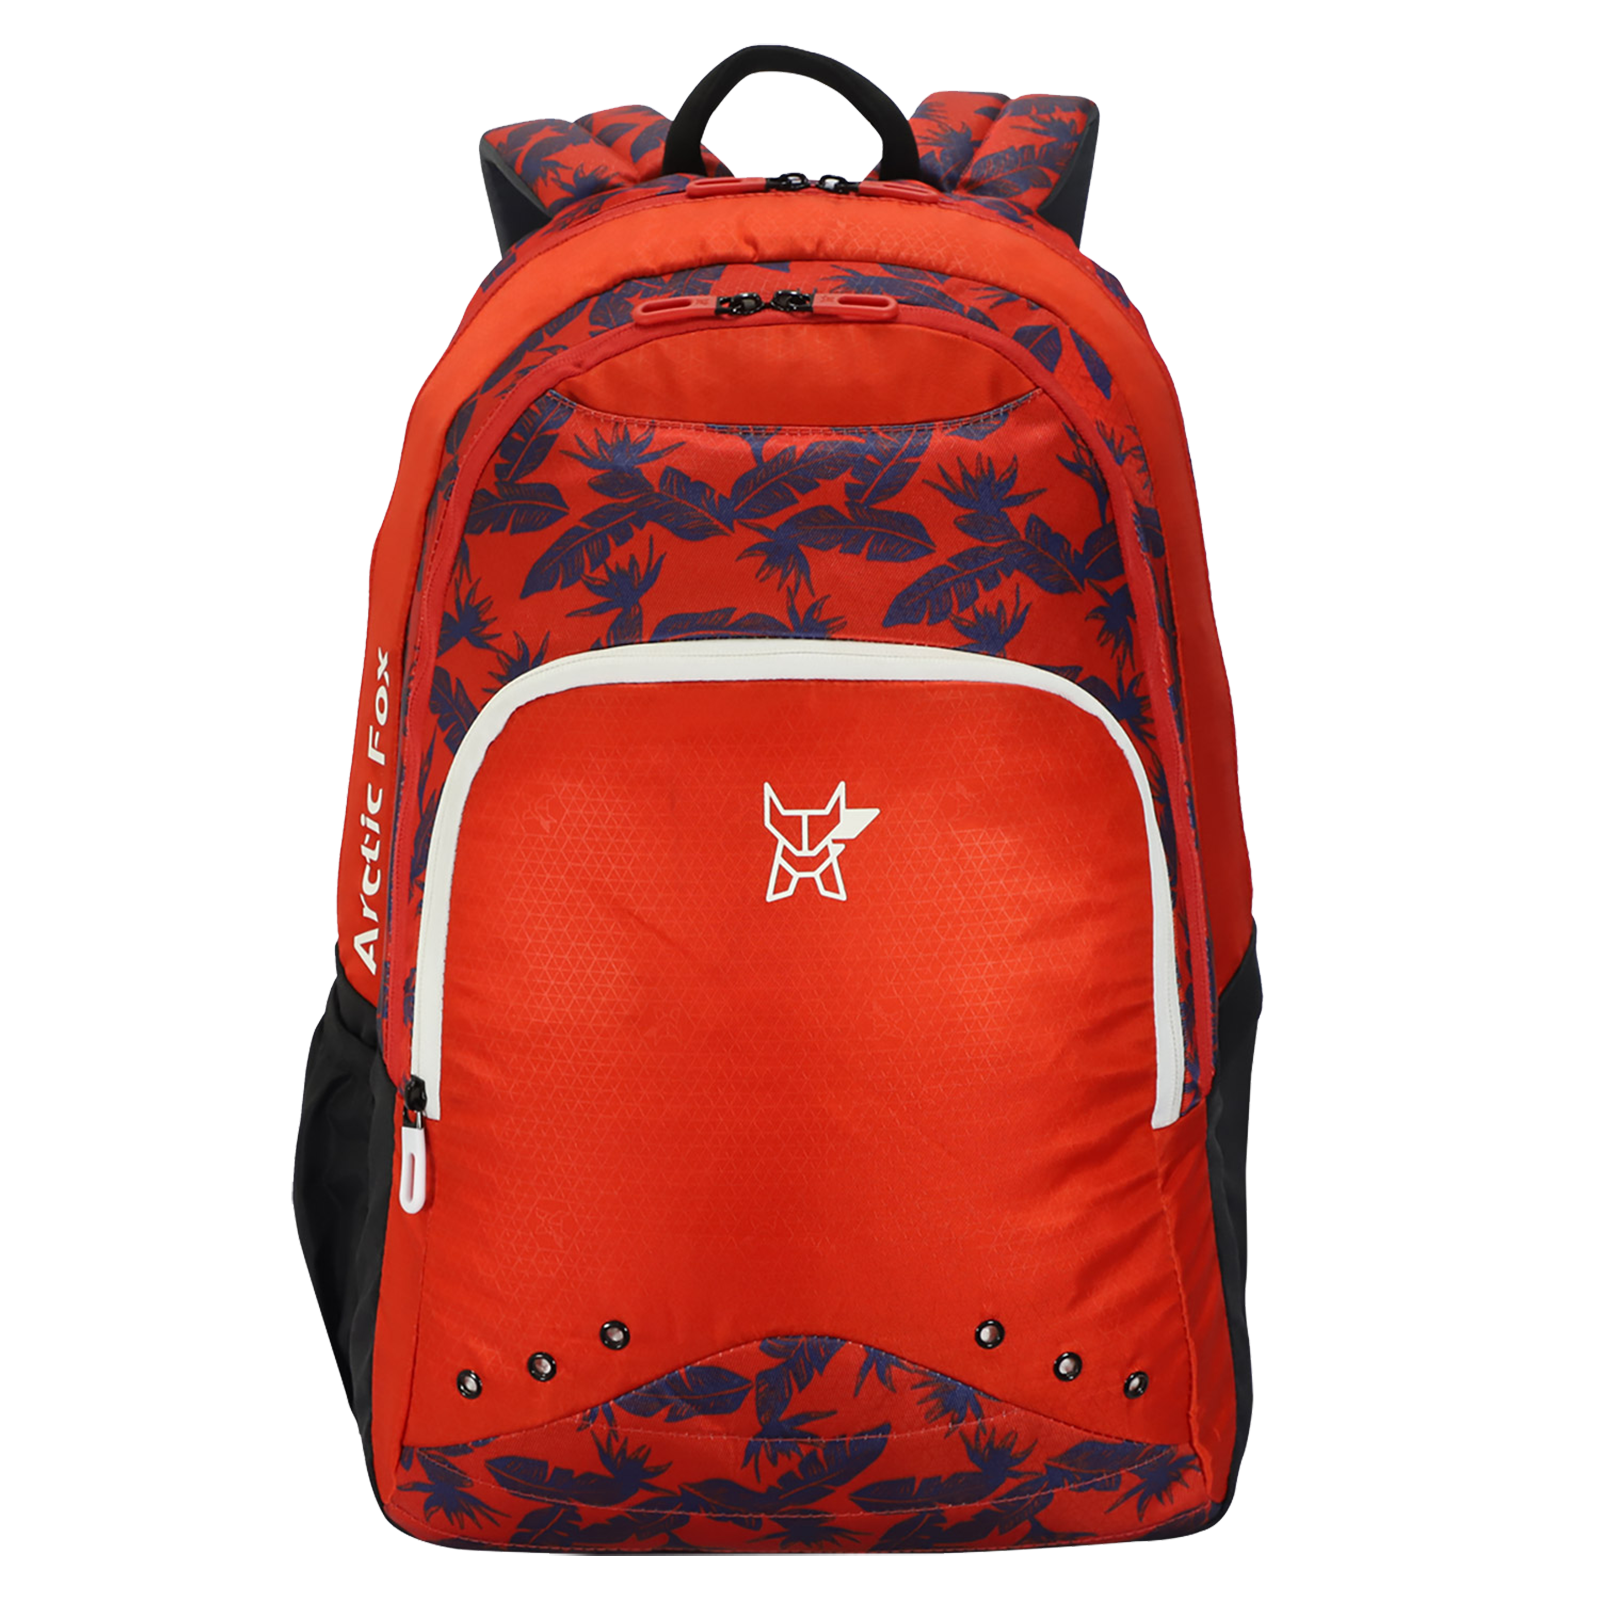 Arctic Fox 40 Litres Twill Polyester Backpack (Water Repellent Fabric, FJUBPKFIRON021040, Neon Fiery Red)_1